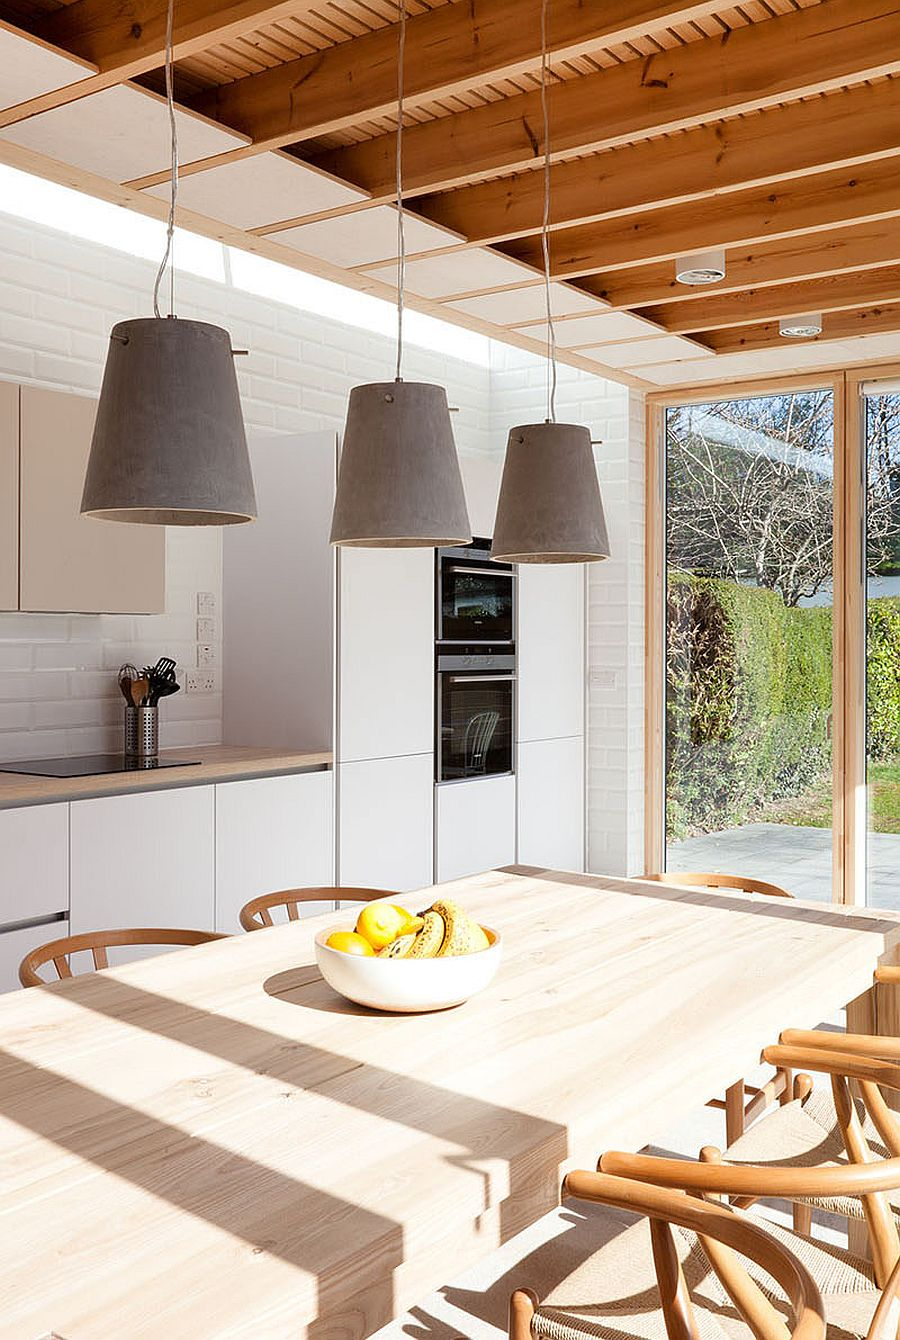 Warm timber surfaces give the interior an inviting appeal